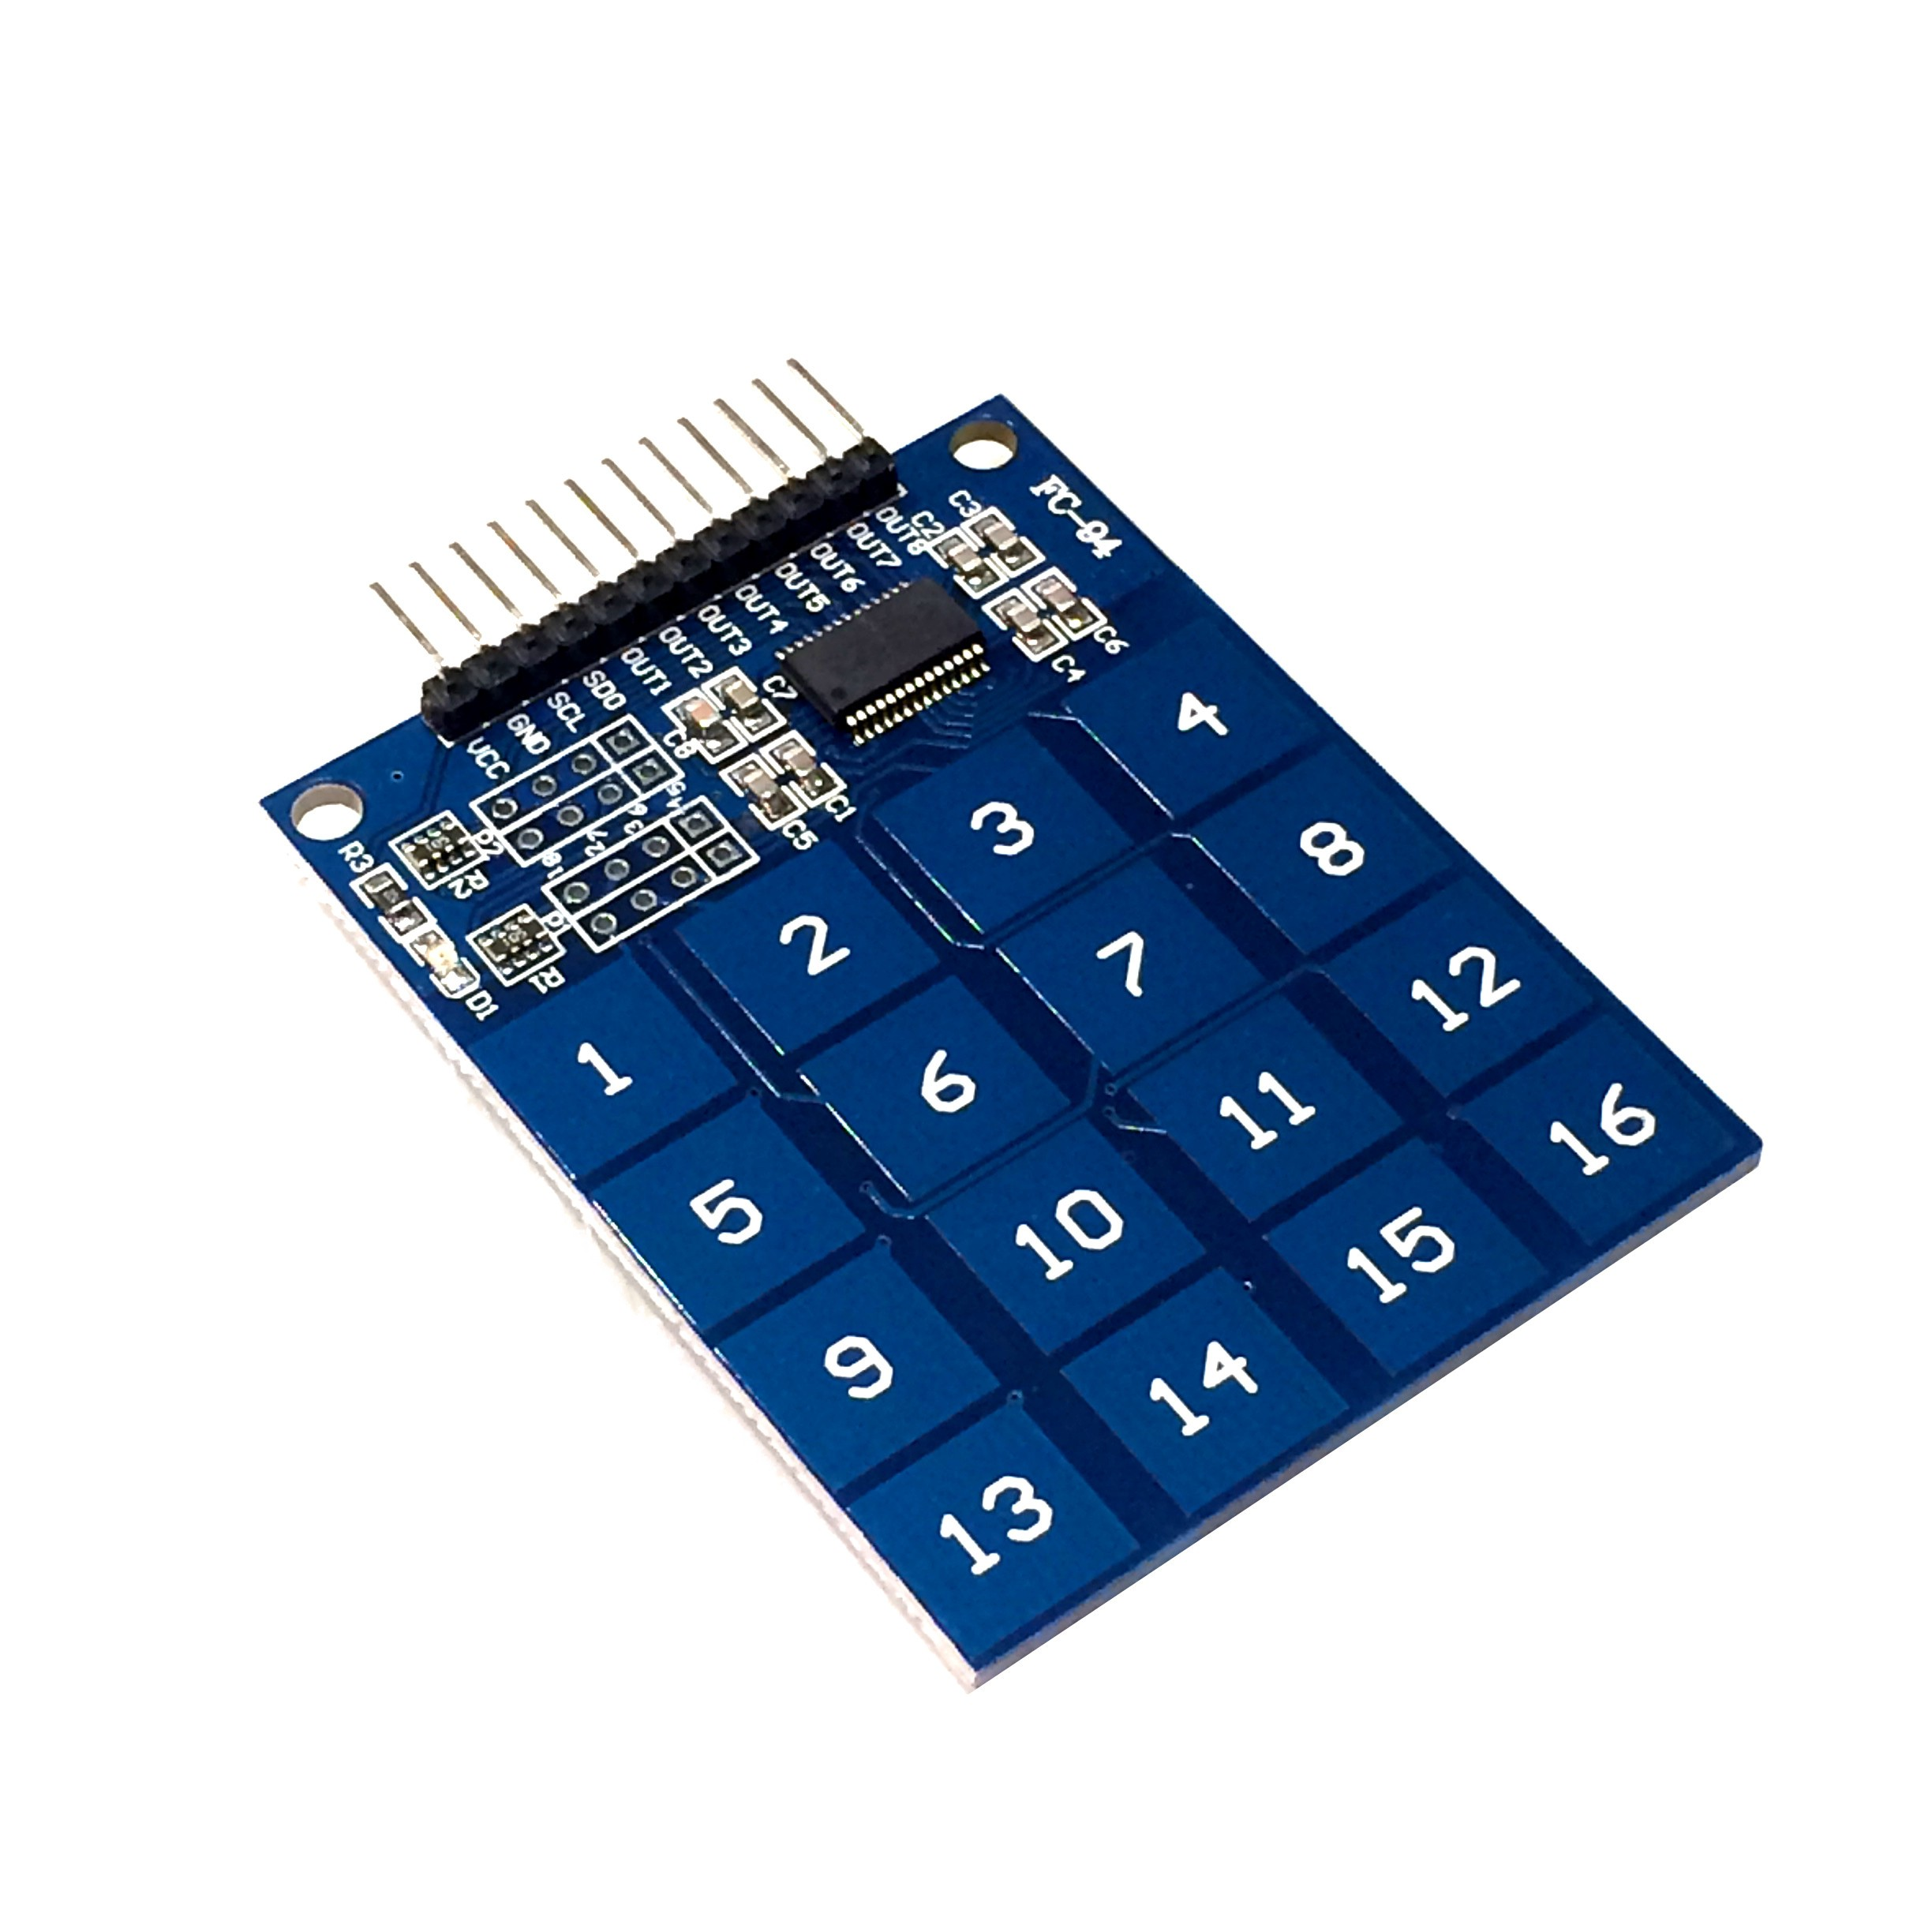 Capacitive touch keypad raspberry pi arduino